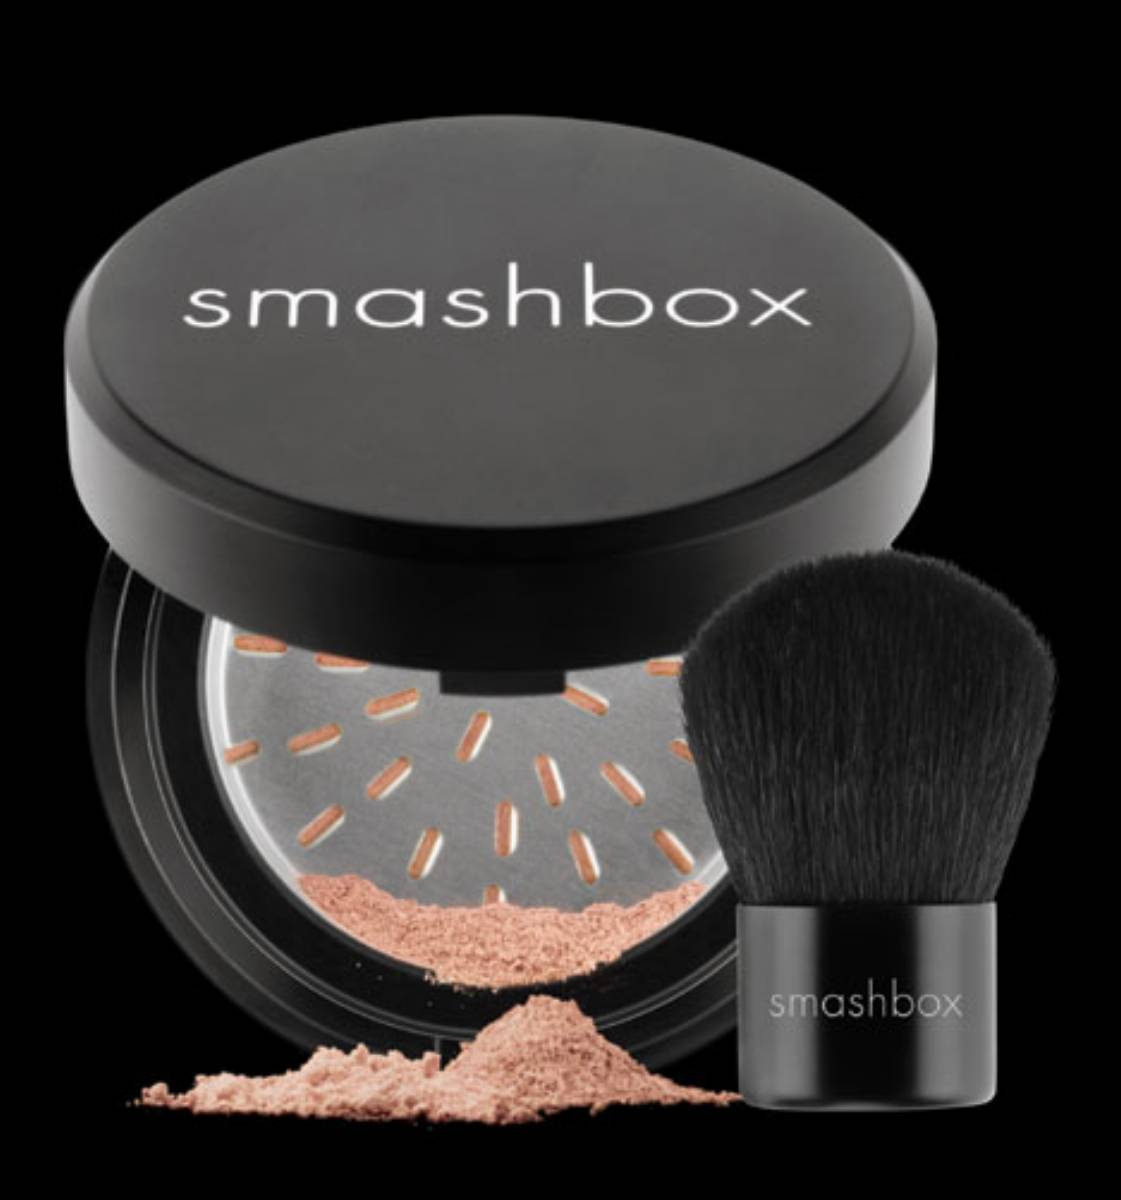 Smashbox Halo Hydrating Perfecting Powder (2)